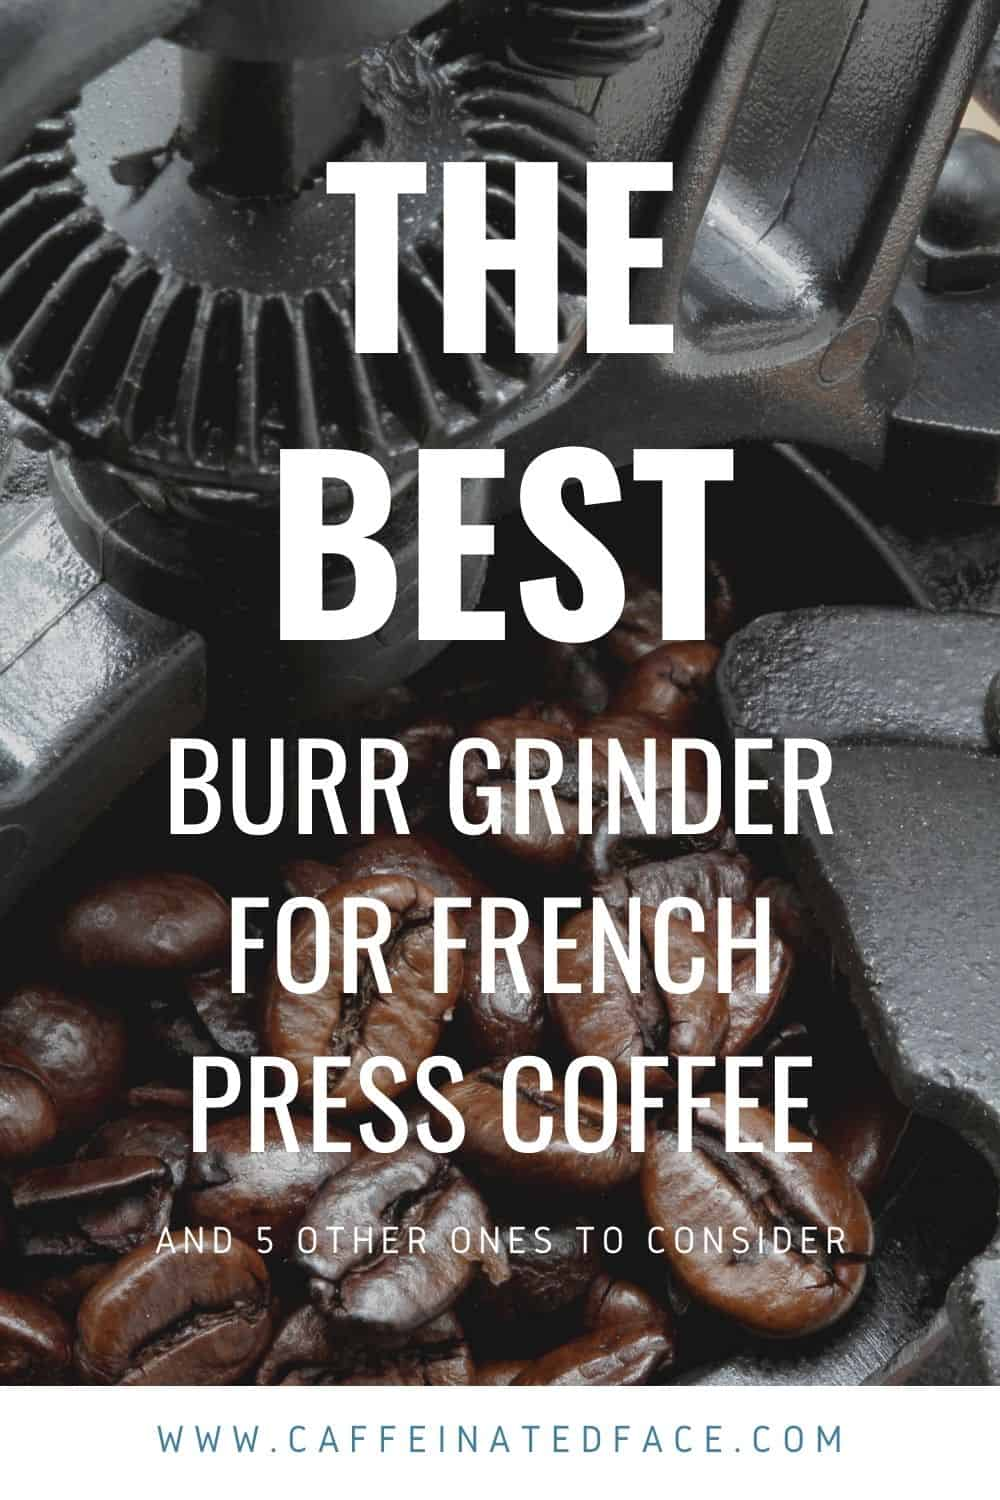 THE BEST BURR GRINDER FOR FRENCH PRESS